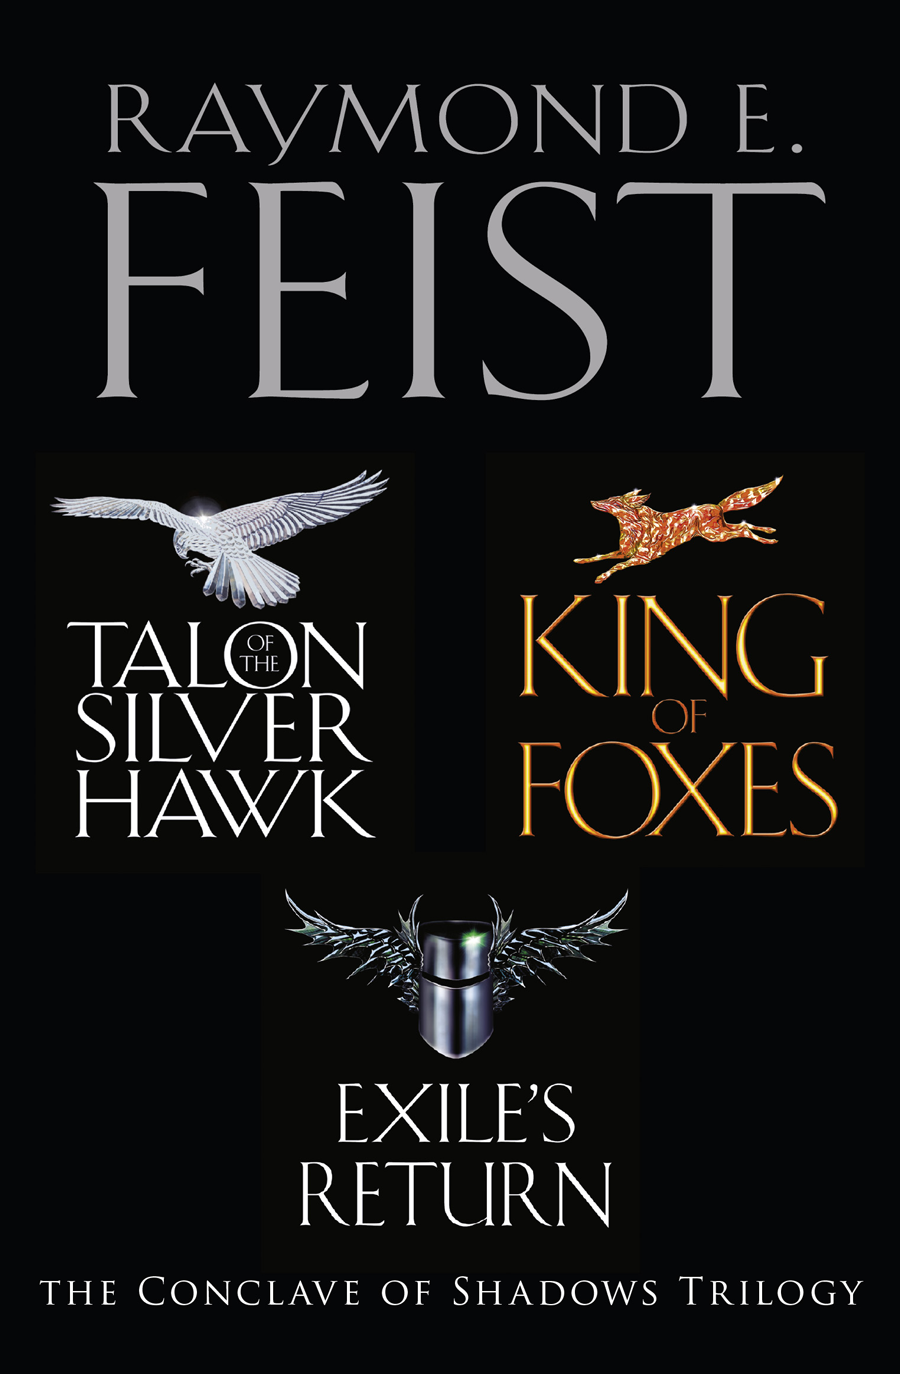 Raymond E. Feist The Complete Conclave of Shadows Trilogy: Talon of the Silver Hawk, King of Foxes, Exile's Return sick of shadows